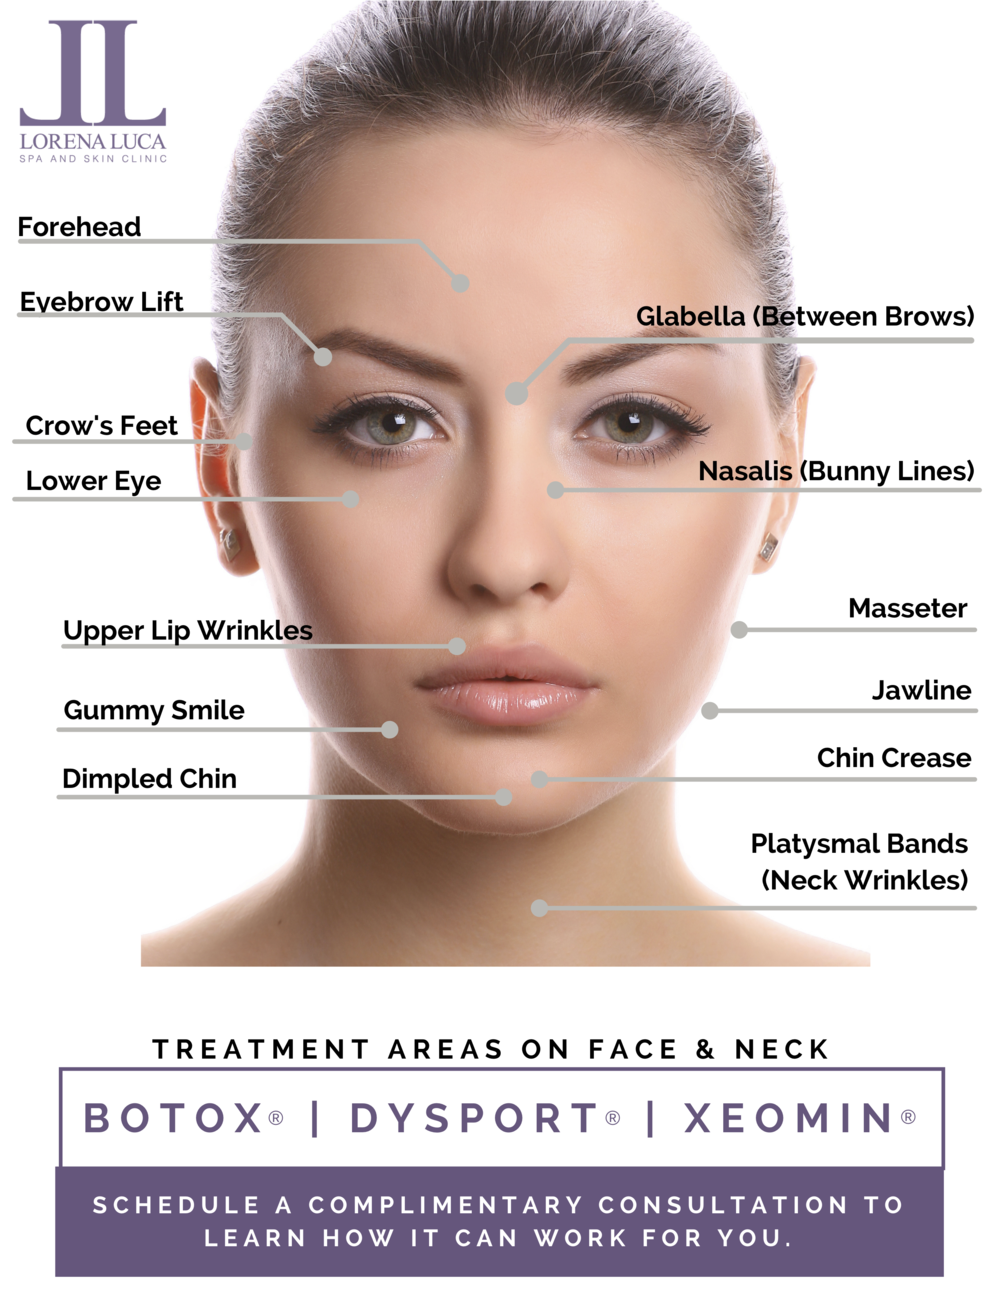 Lorena Luca offers Best priced Botox in Raleigh